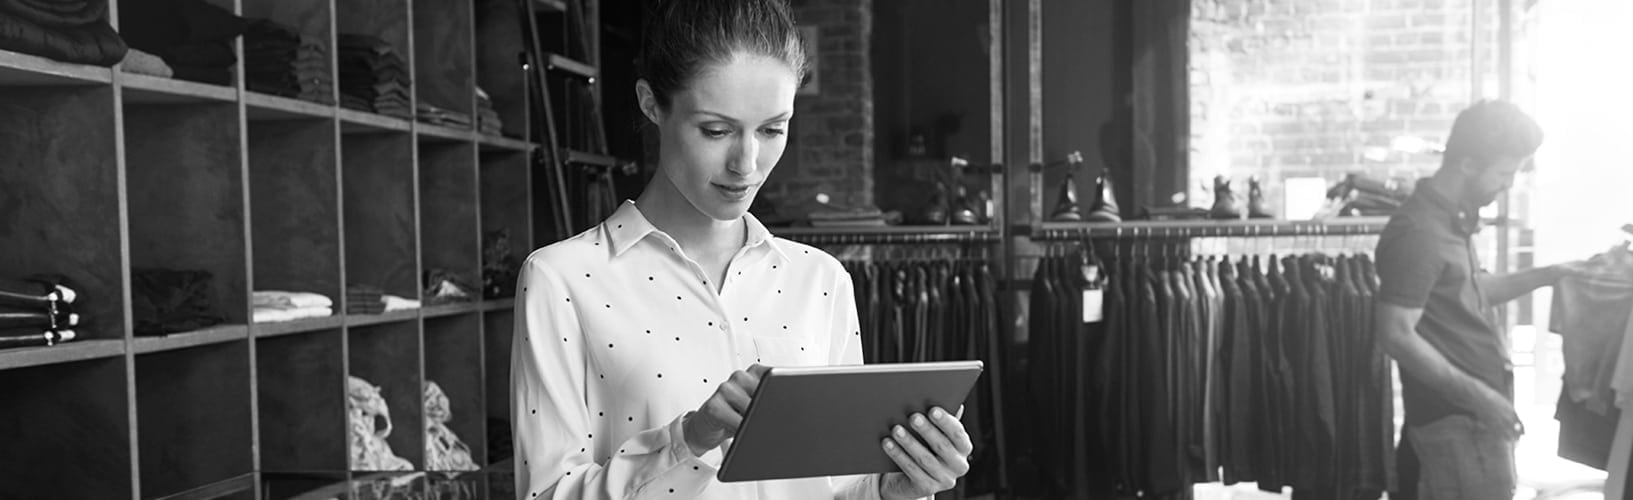 store associate with tablet